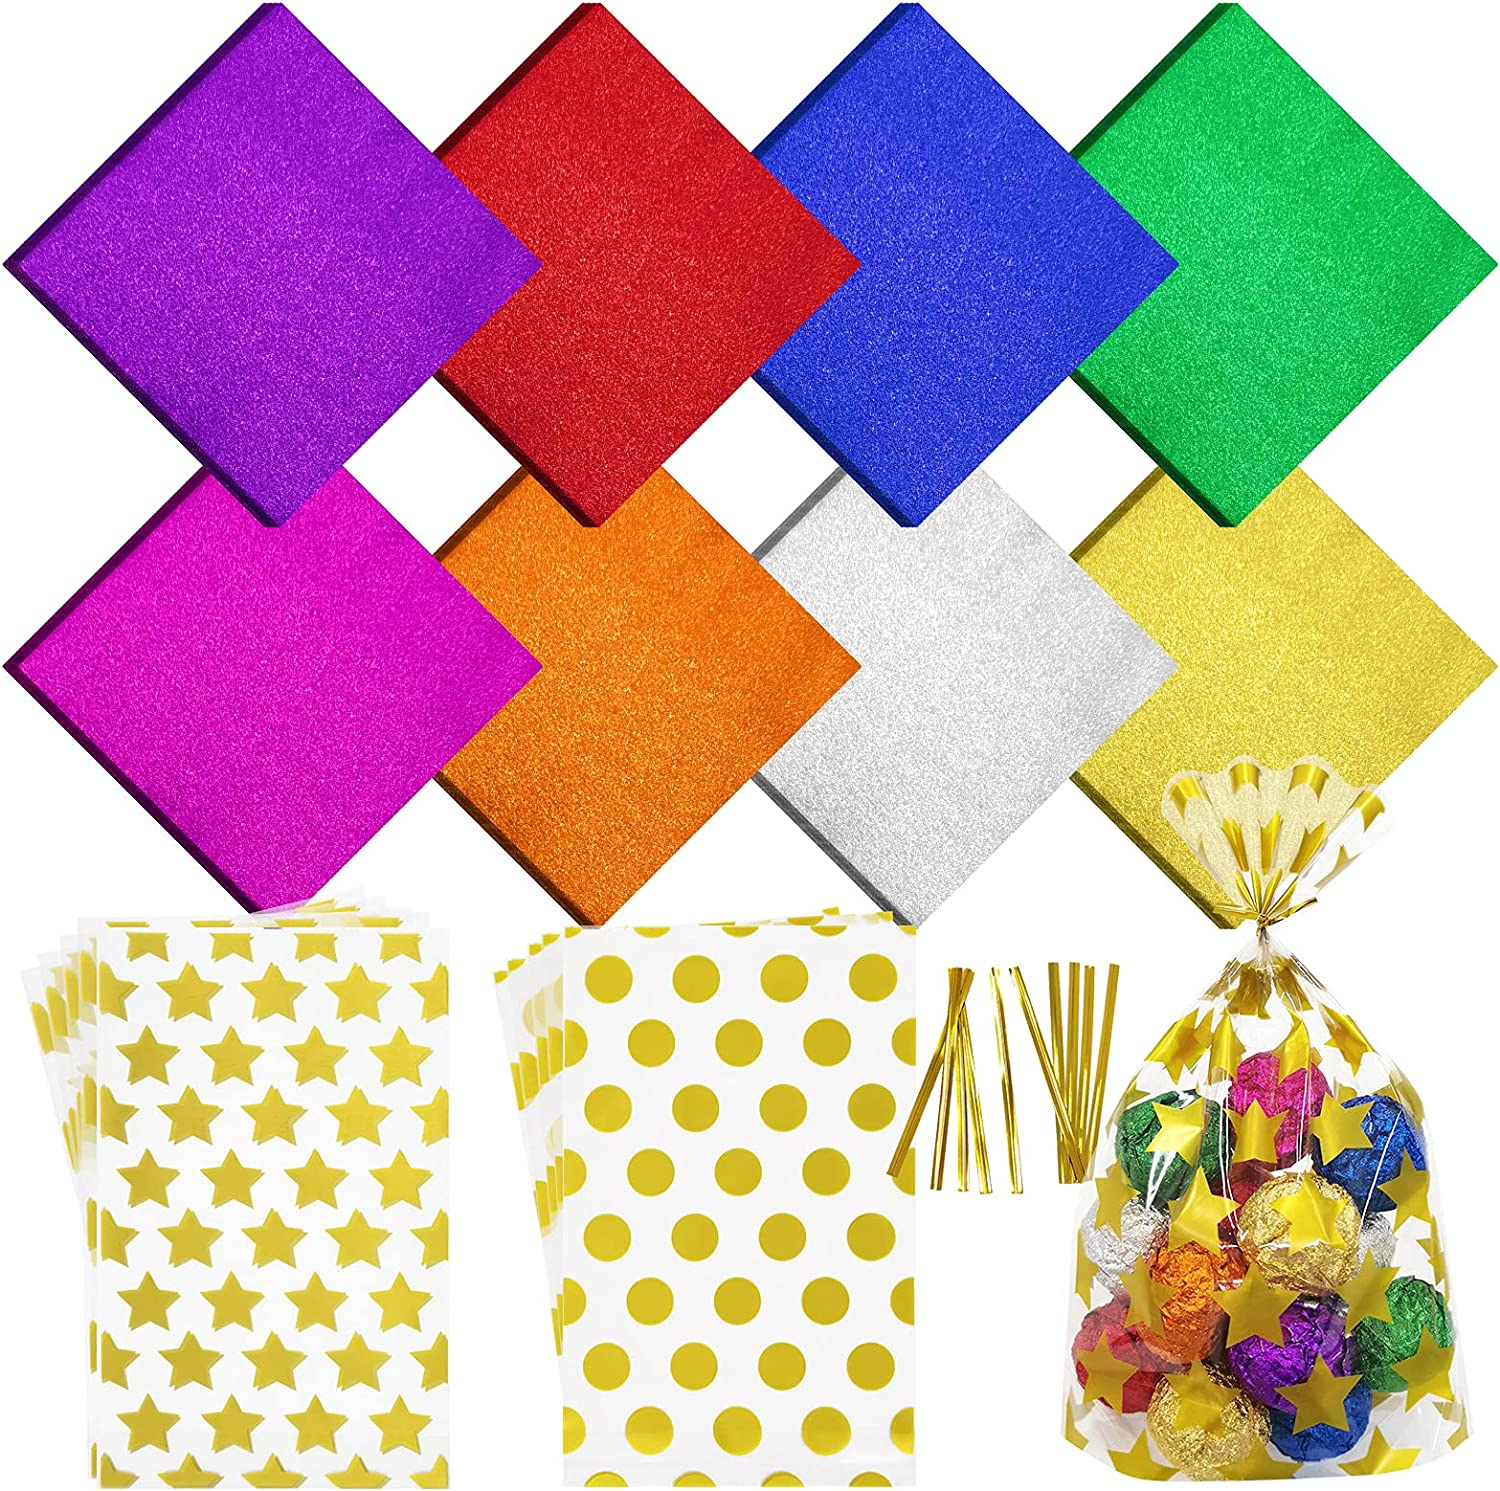 SNAIL GARDEN 800Pcs Candy Wrappers for Chocolates, 4x4 inch Food Grade Aluminum Foil Papers with 10Pcs Gold Candy Bags & 10Pcs Metallic Twist Ties, Colored Foil Sheets for DIY Homemade Candy, 8Colors